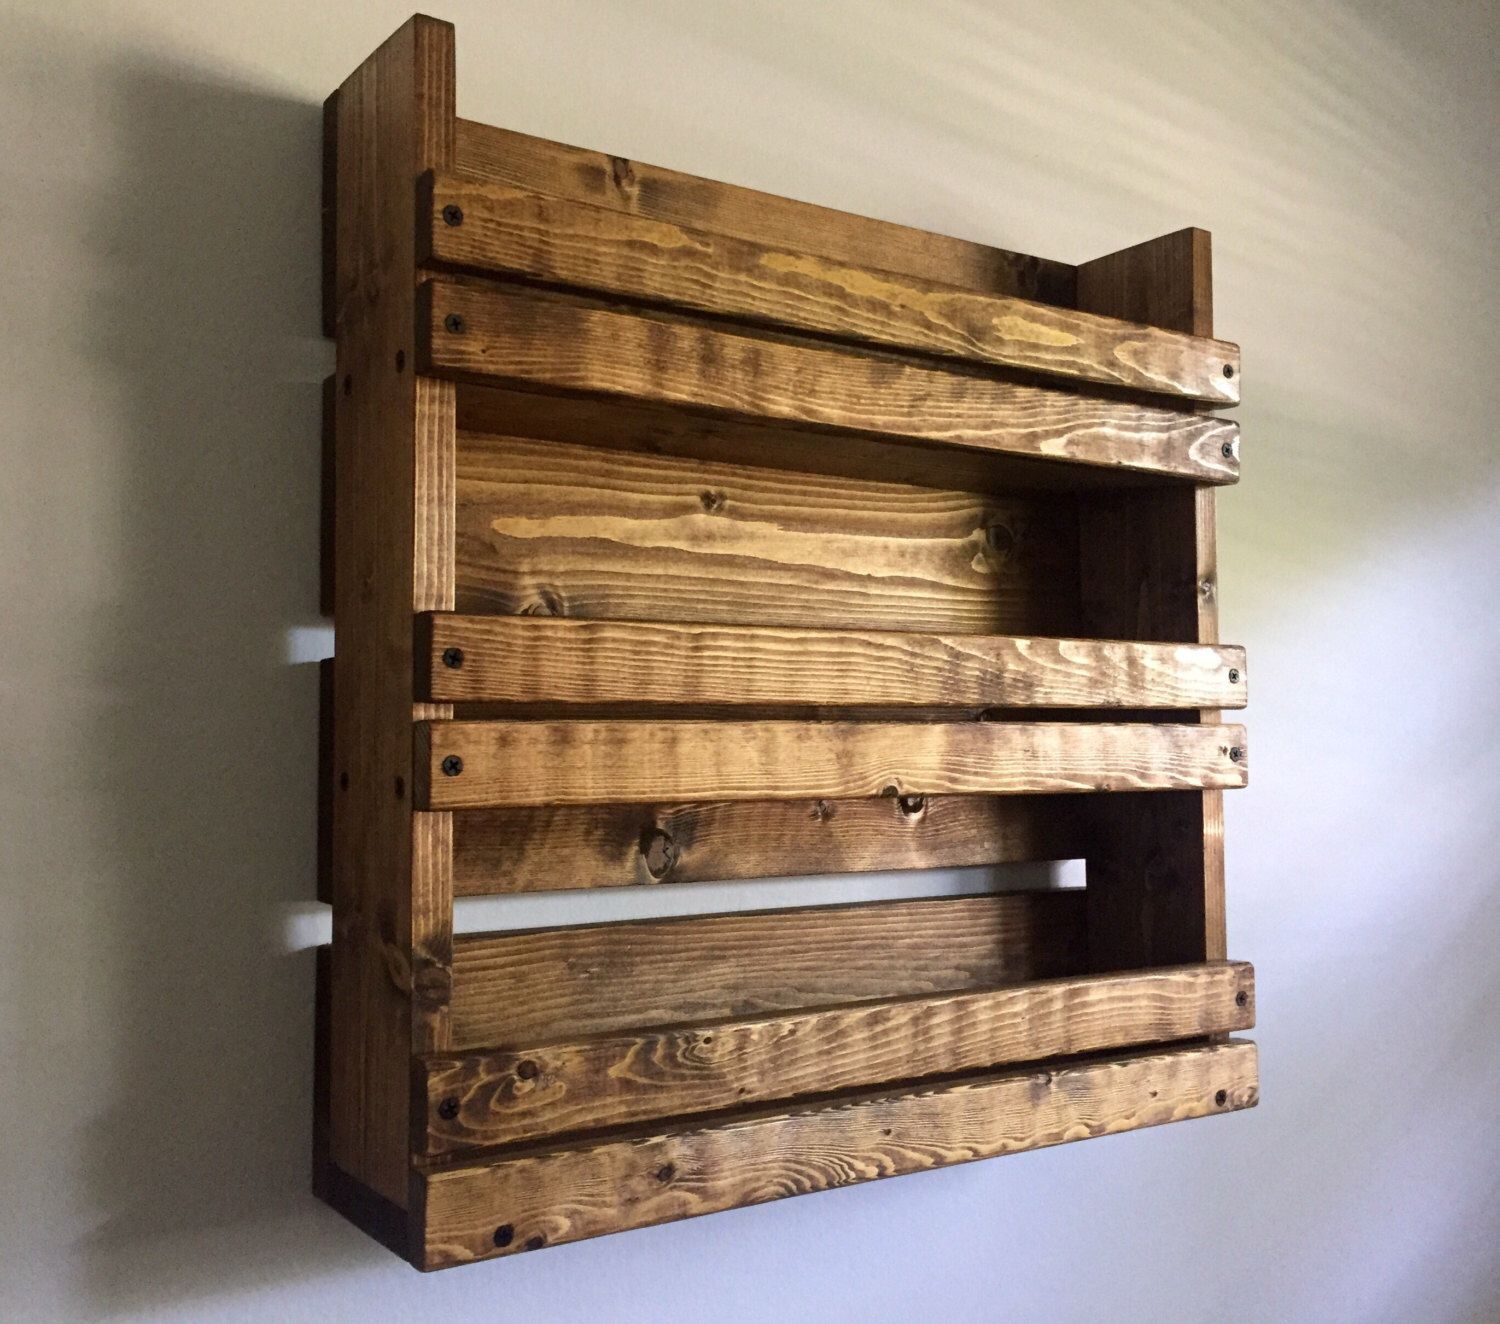 Spice Racks For Kitchen Walls